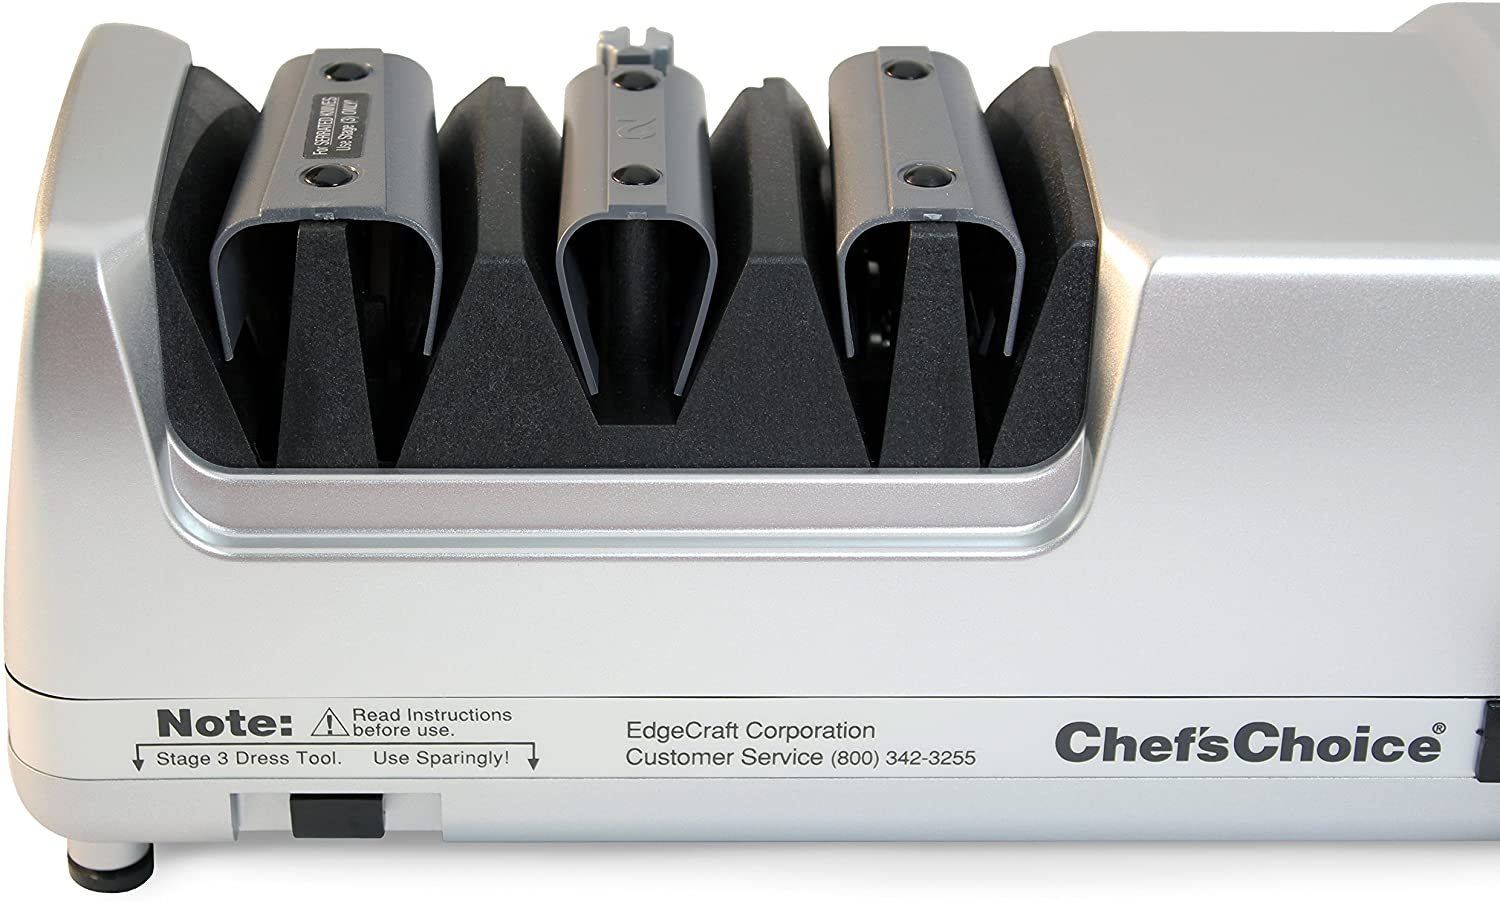 Chef's Choice Professional Knife Sharpener closeup